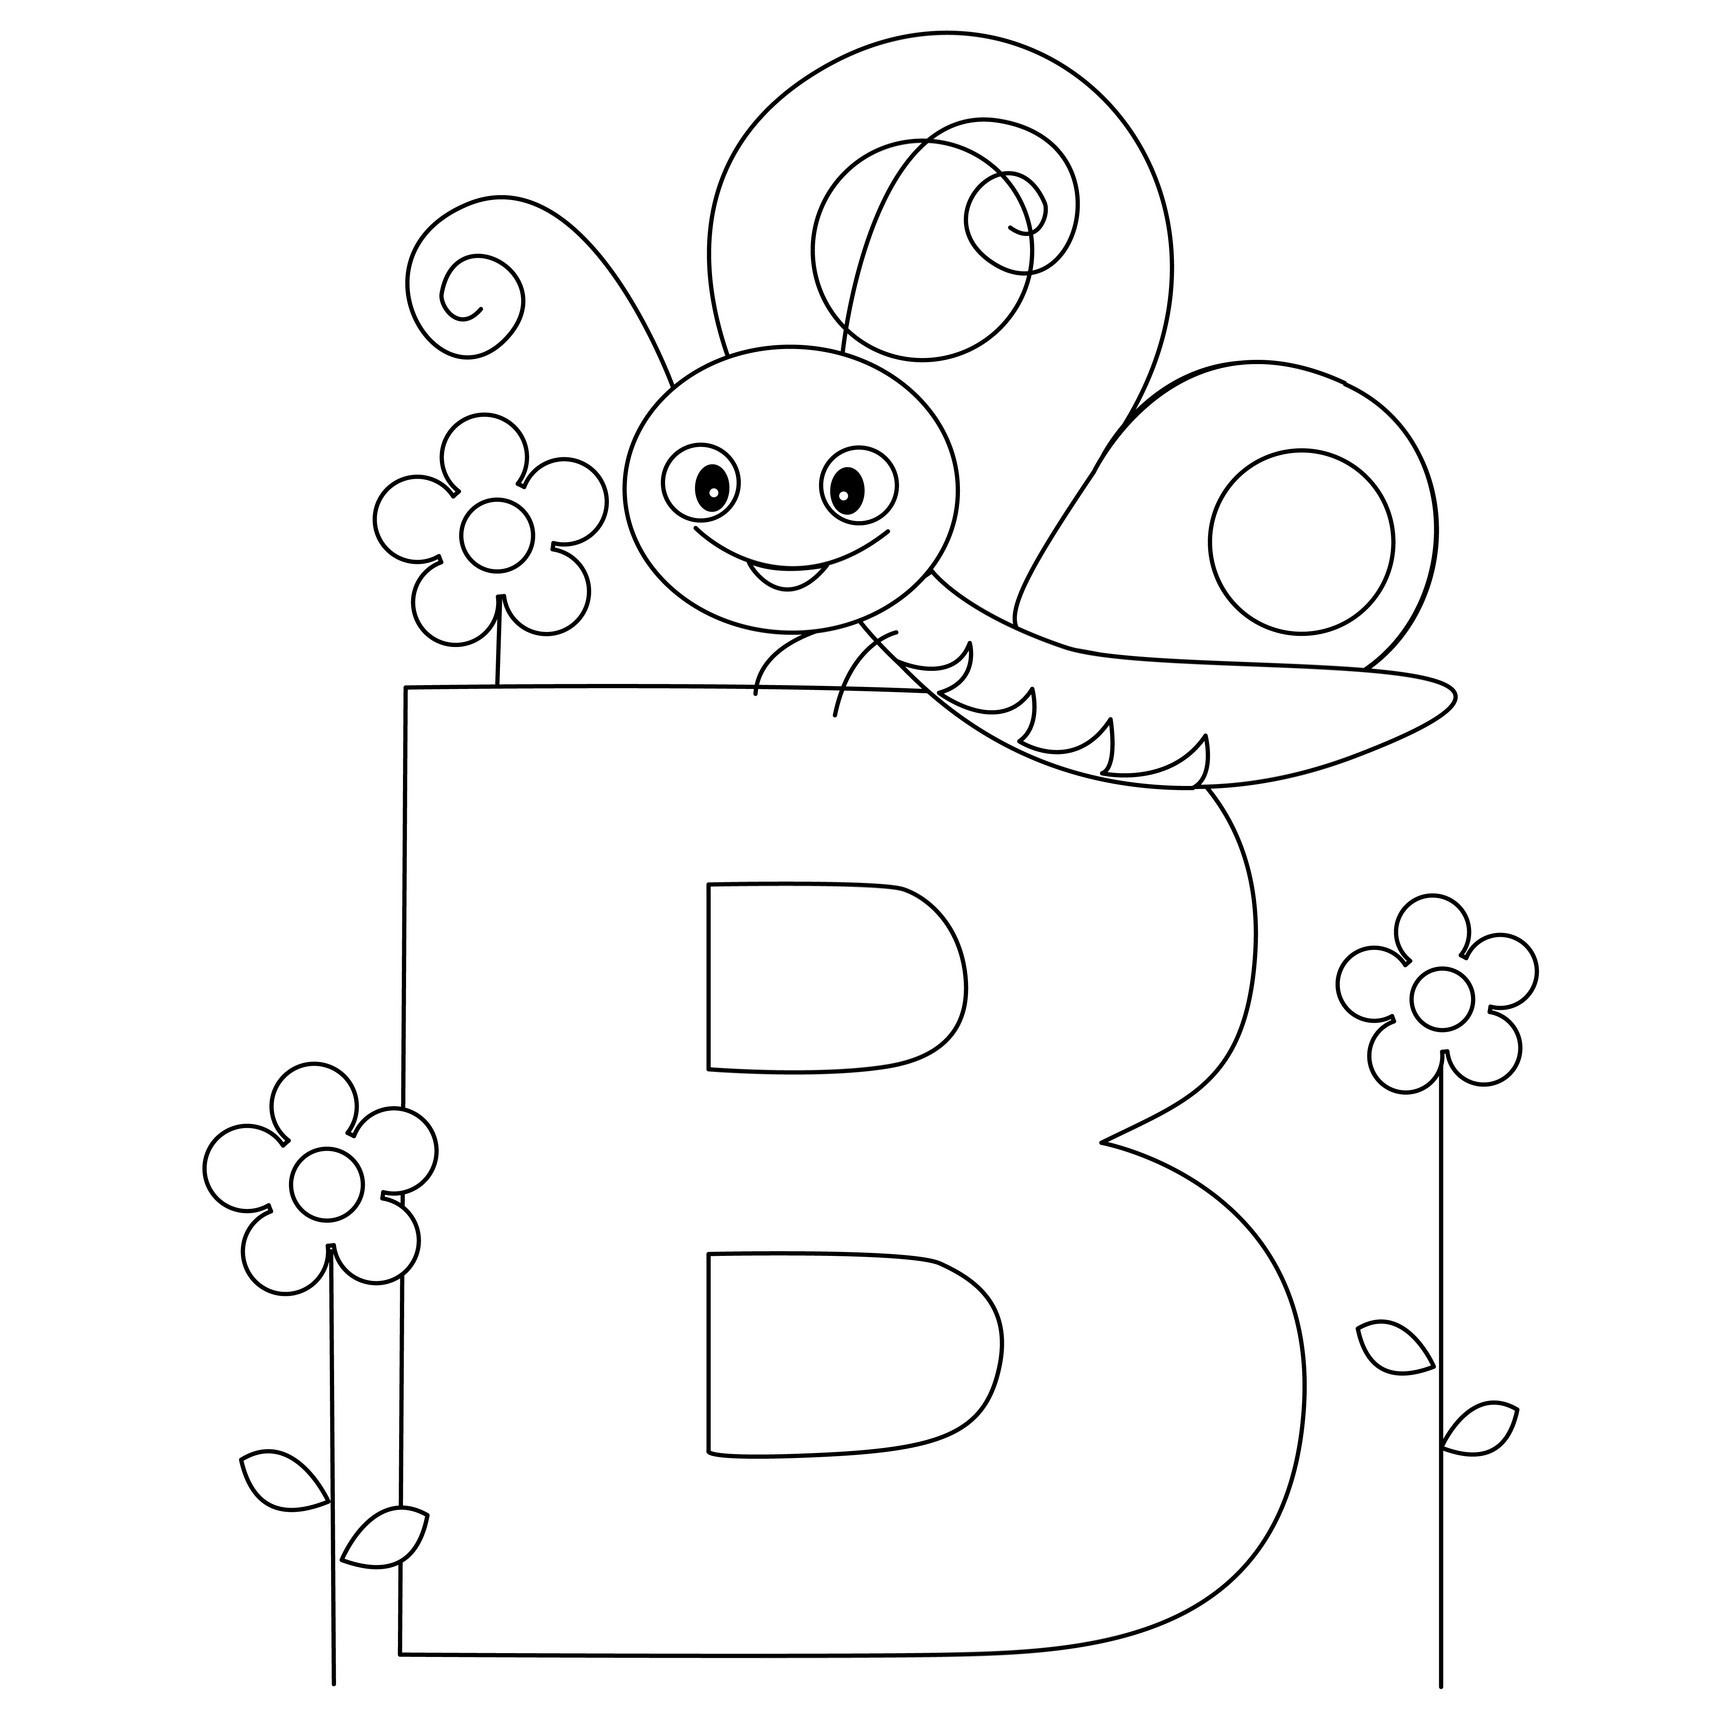 colouring pictures of alphabets free printable alphabet coloring pages easy peasy and fun colouring of pictures alphabets